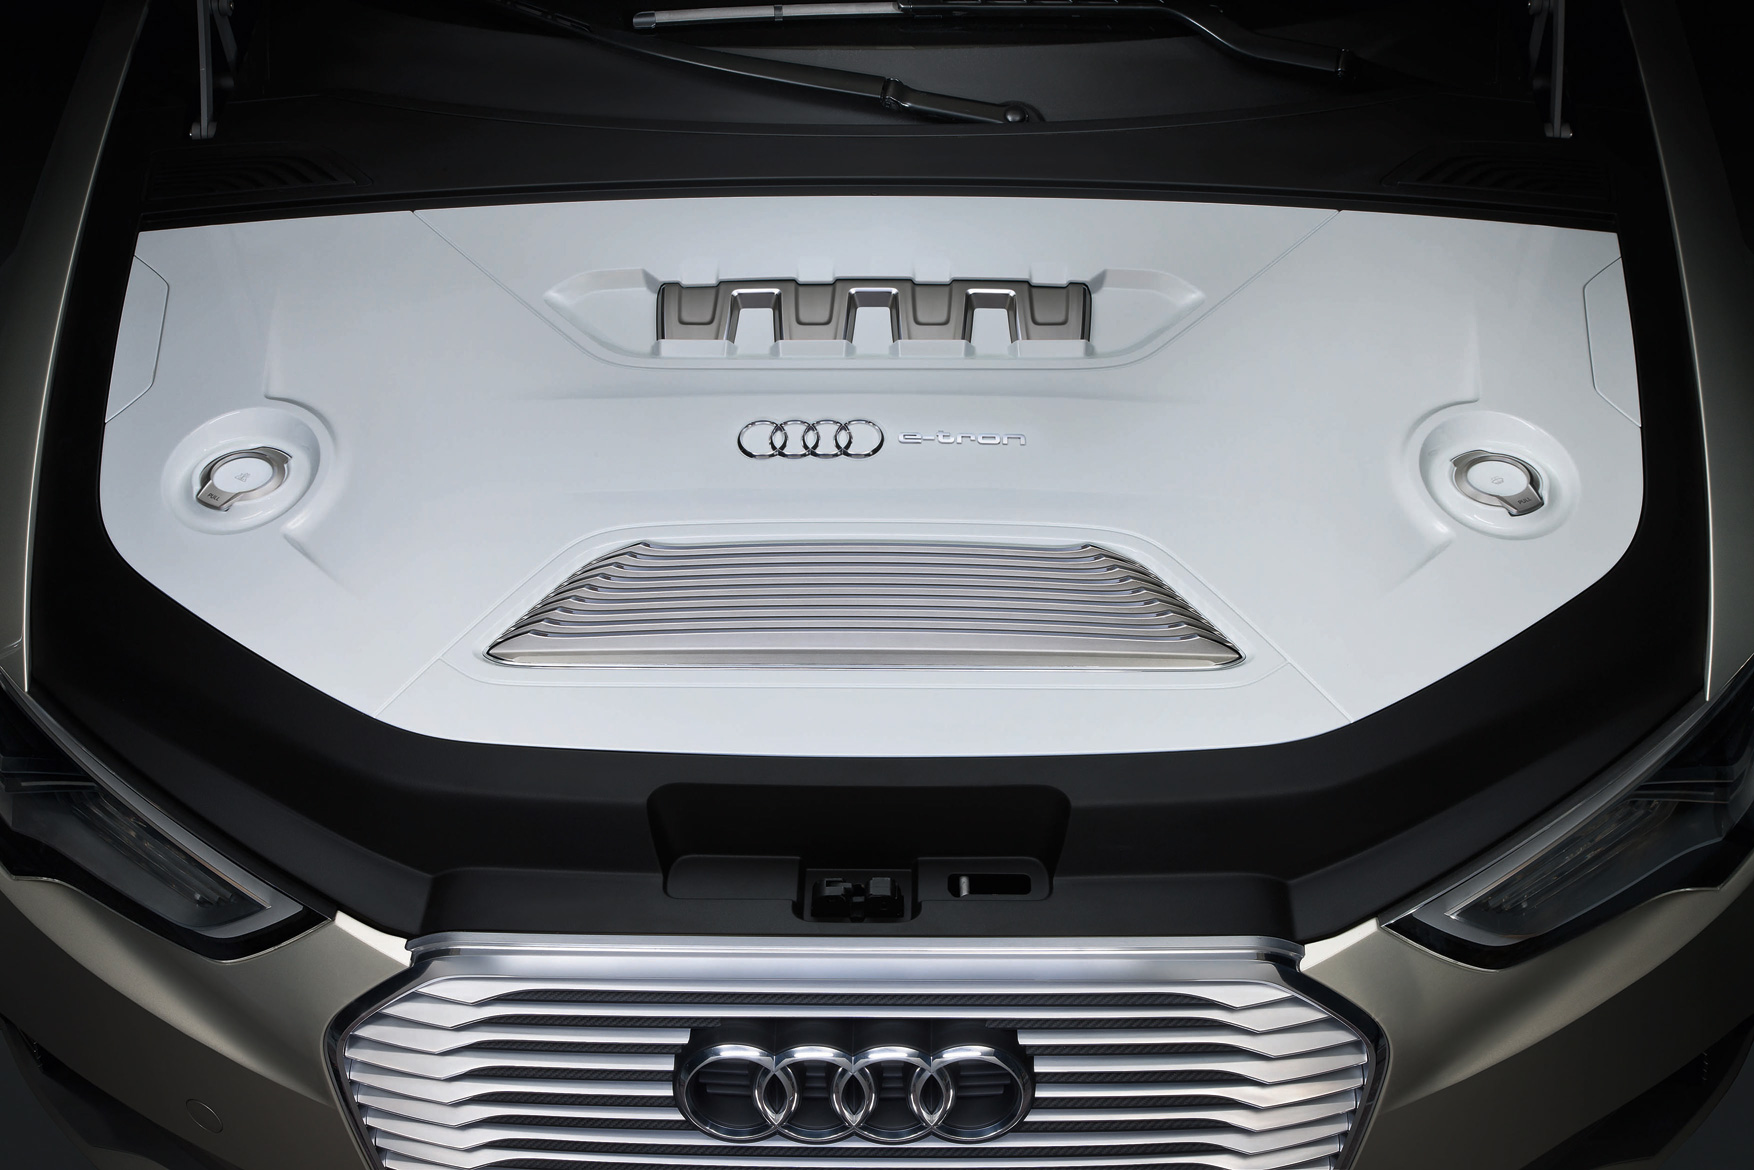 Audi A3 e-tron engine #3